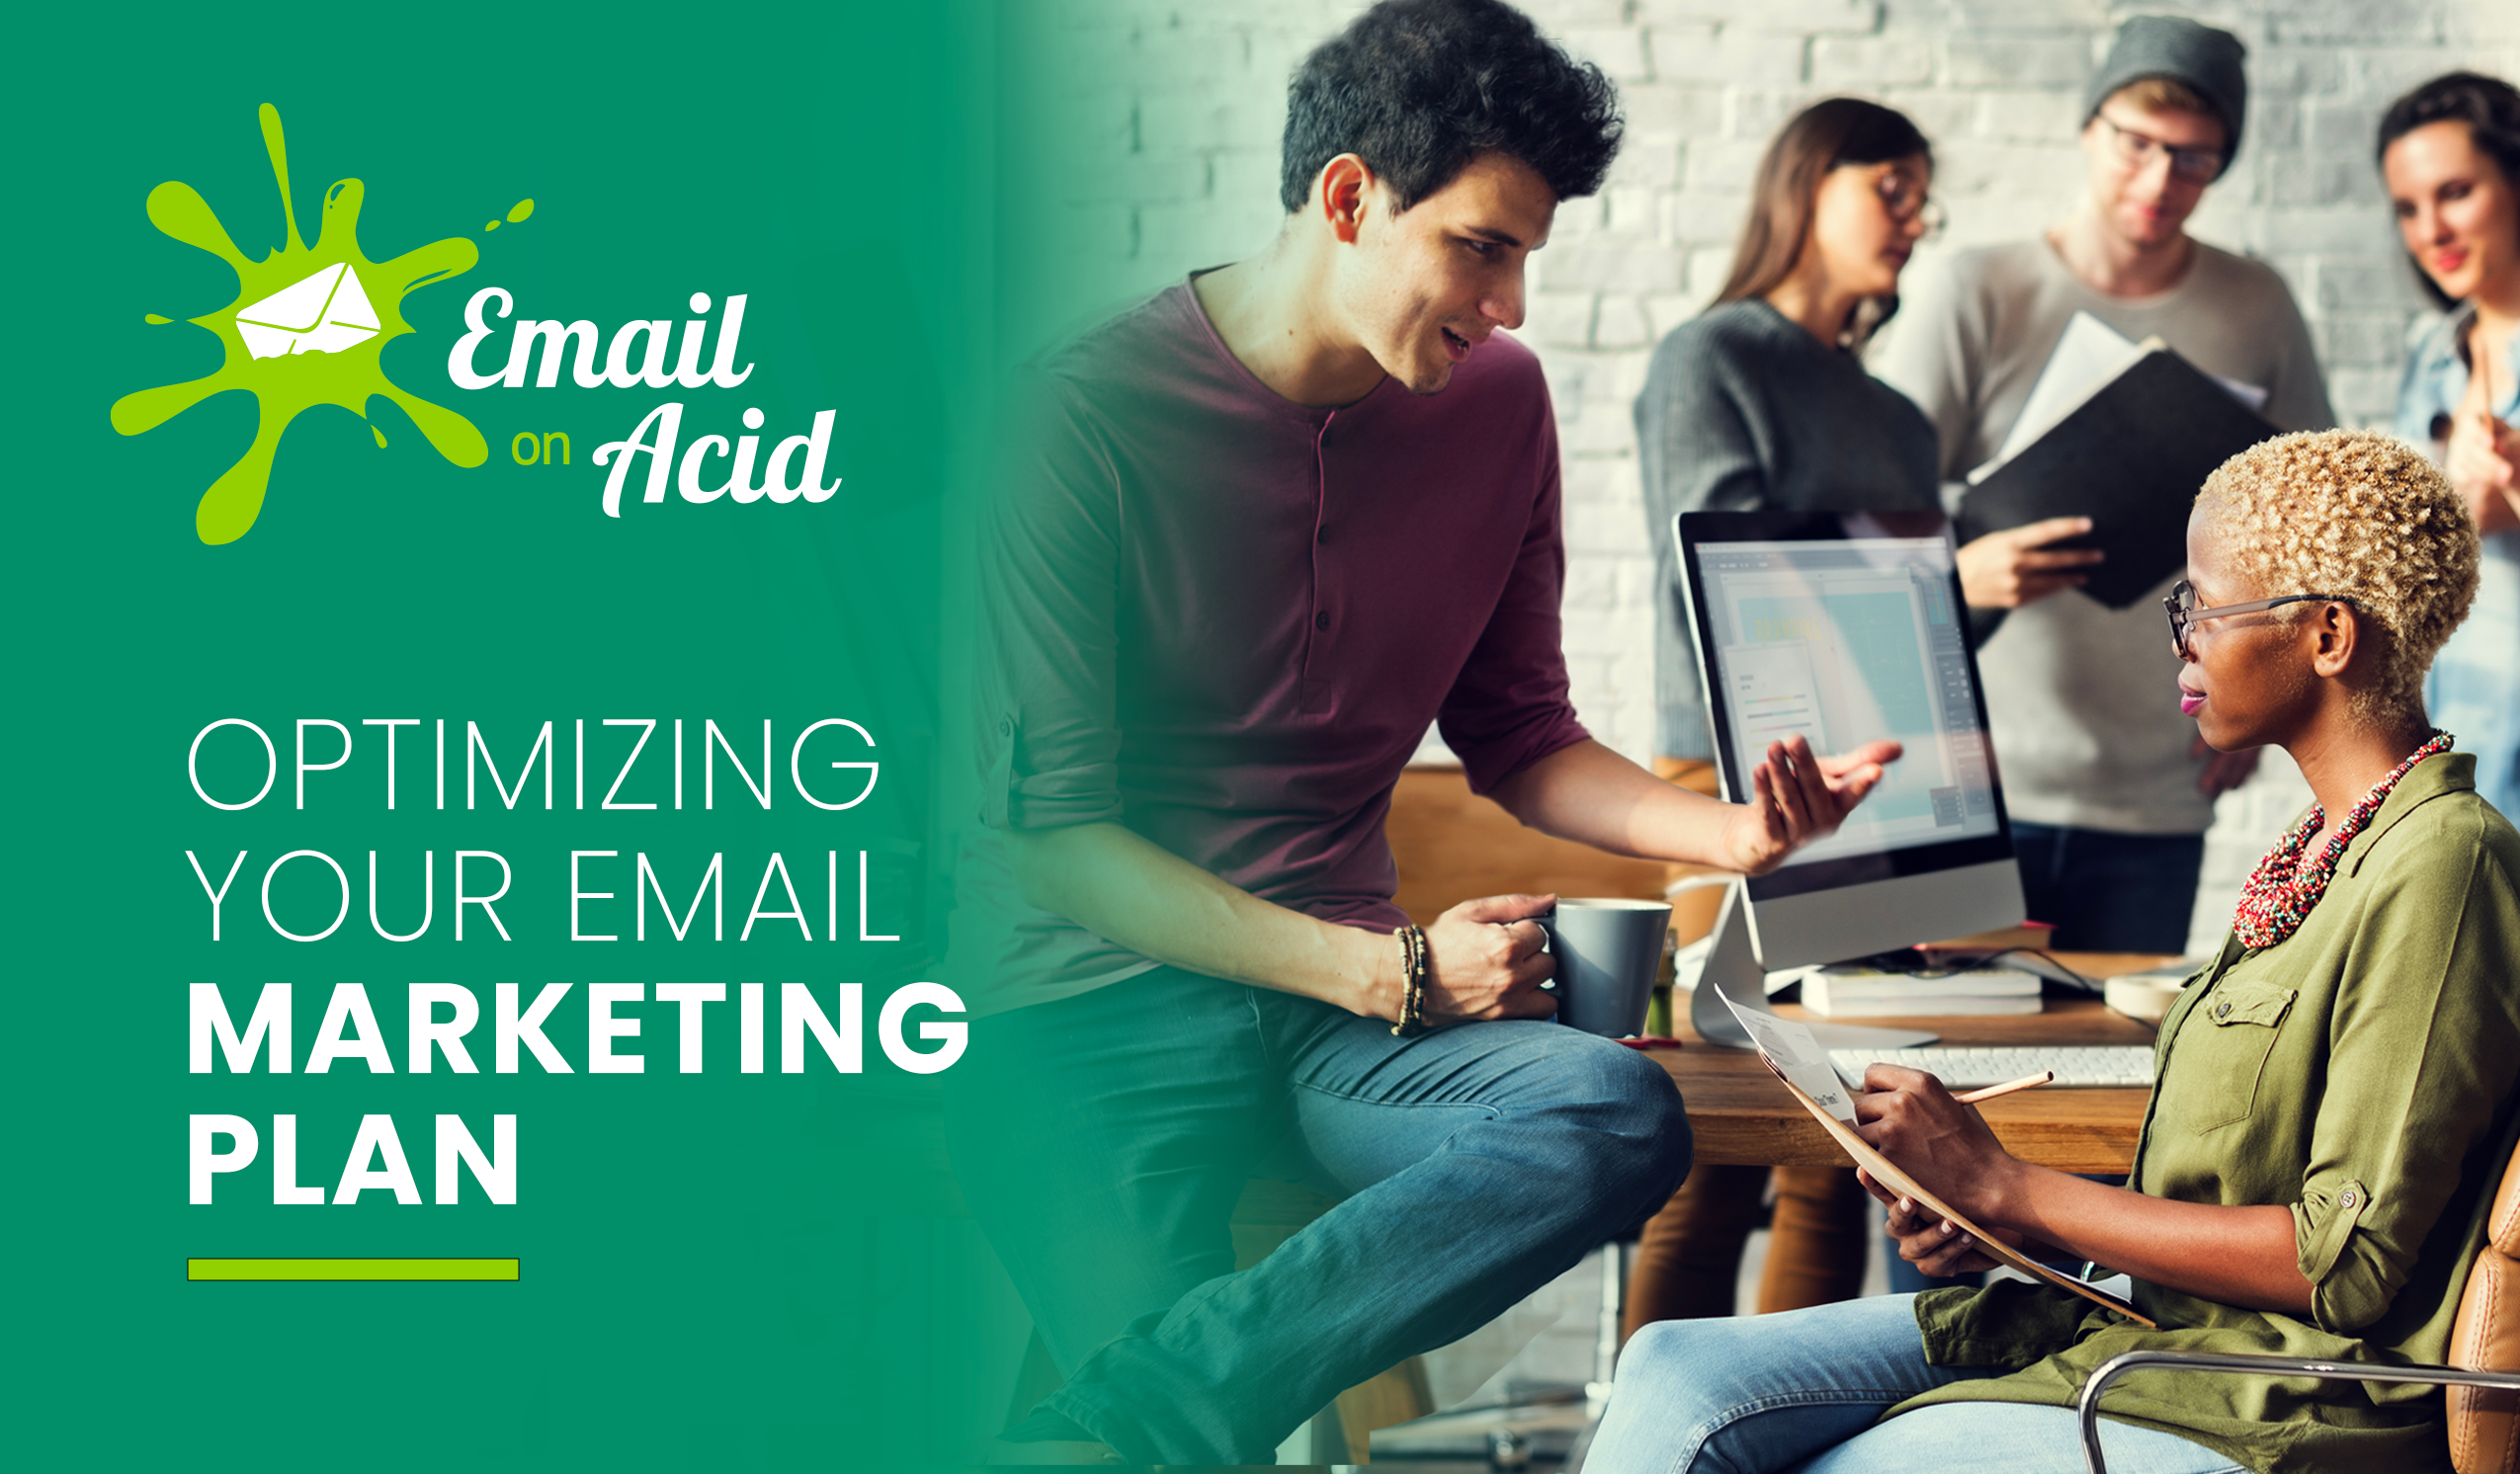 Colleagues discuss email marketing optimization.